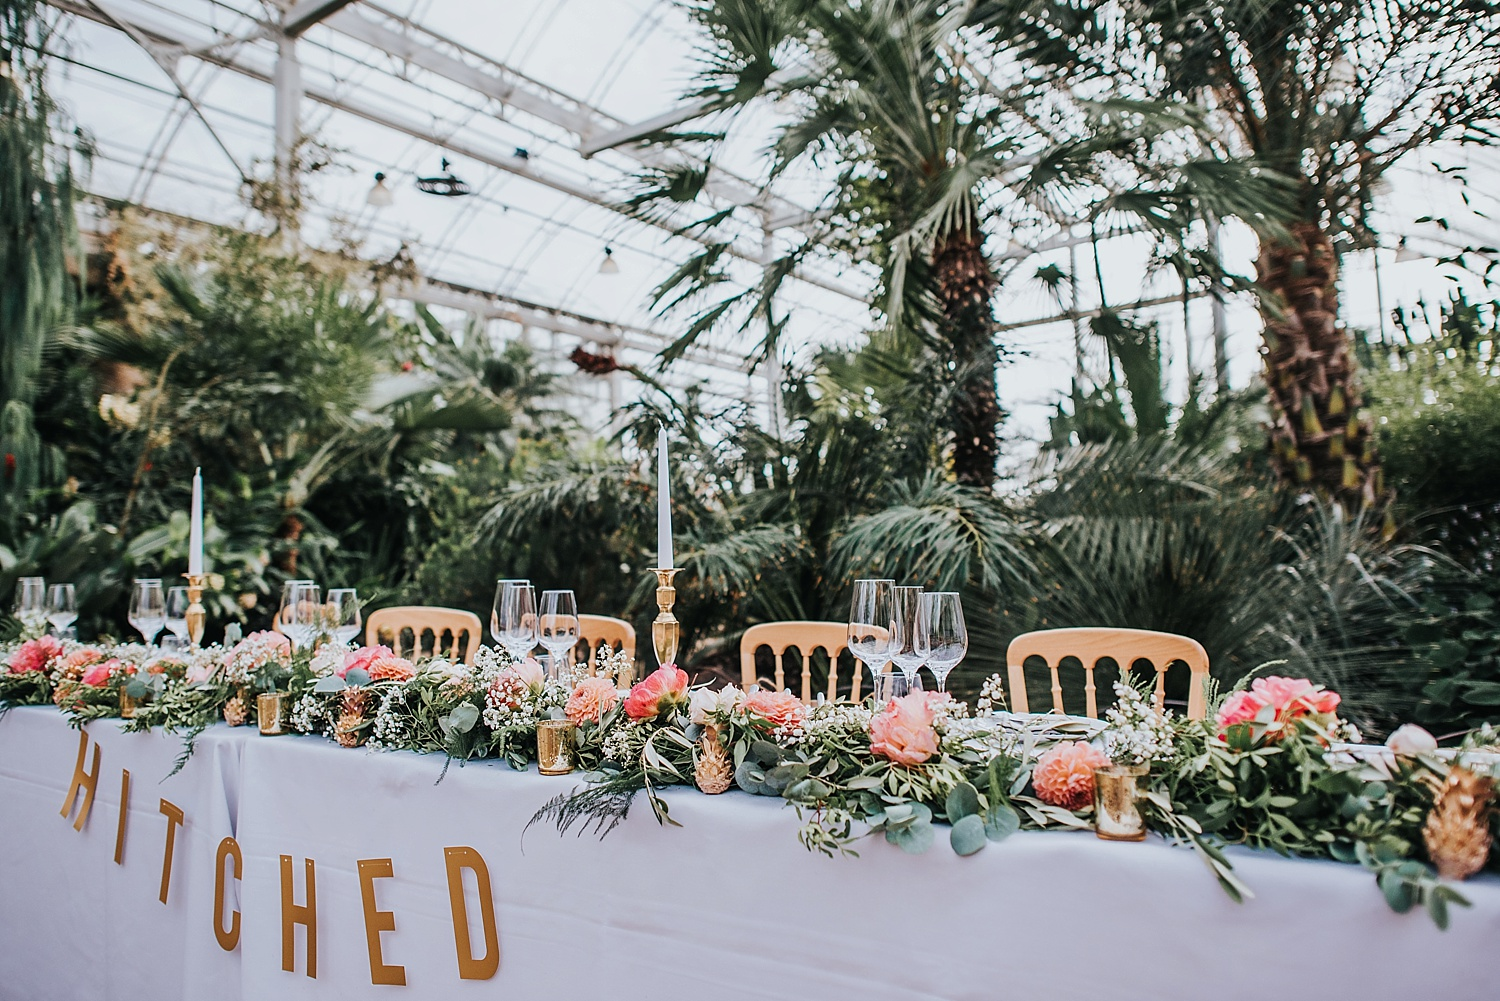 top table wedding setup inside RHS Wisely tropical glasshouse